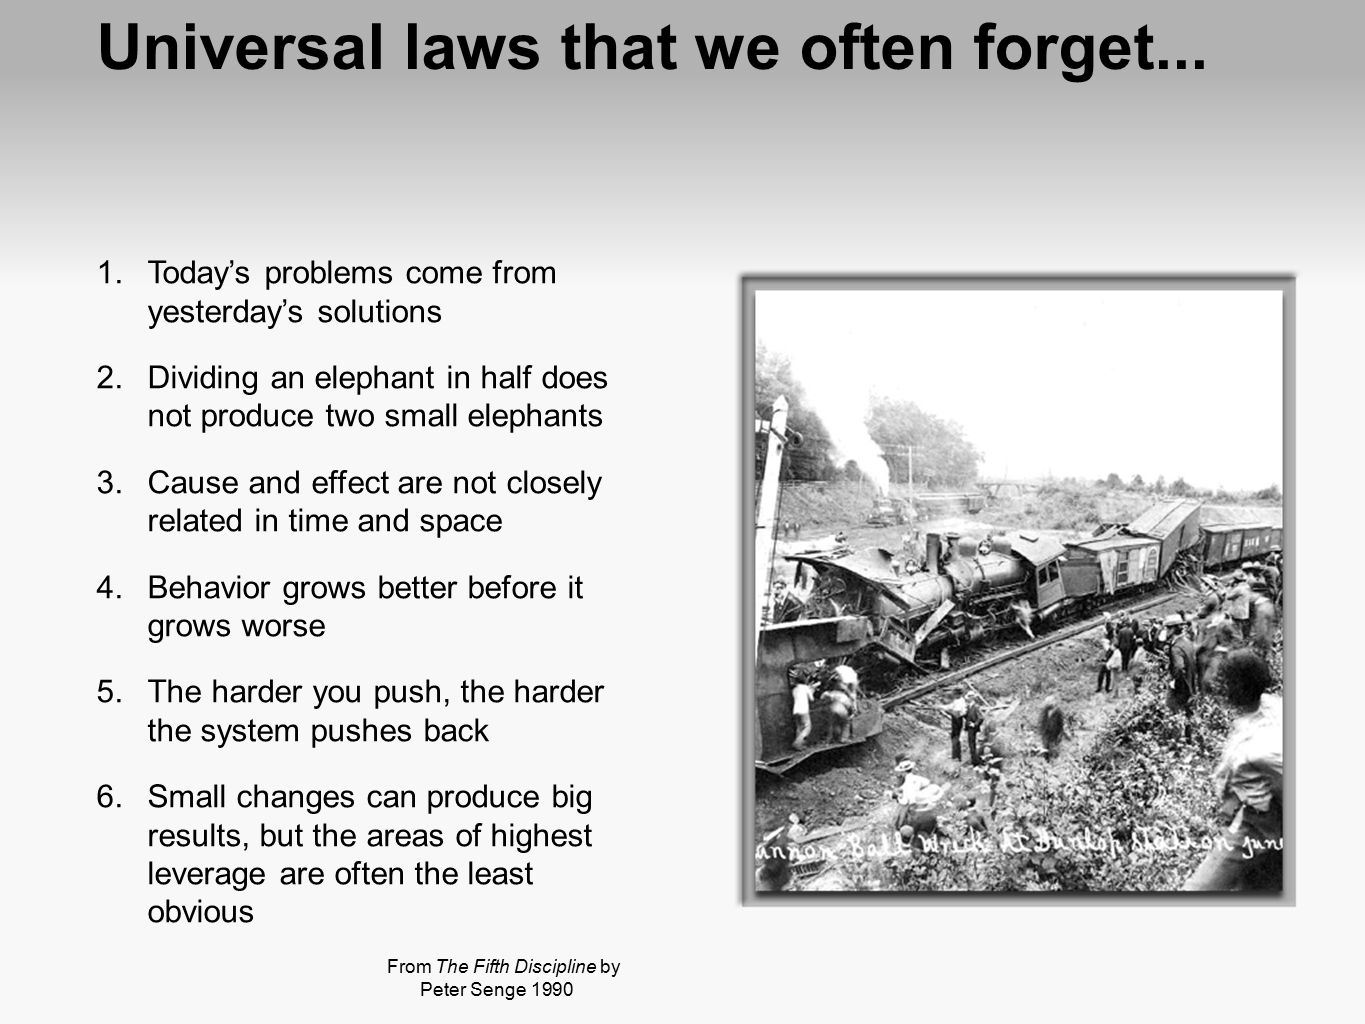 Universal laws that we often forget...